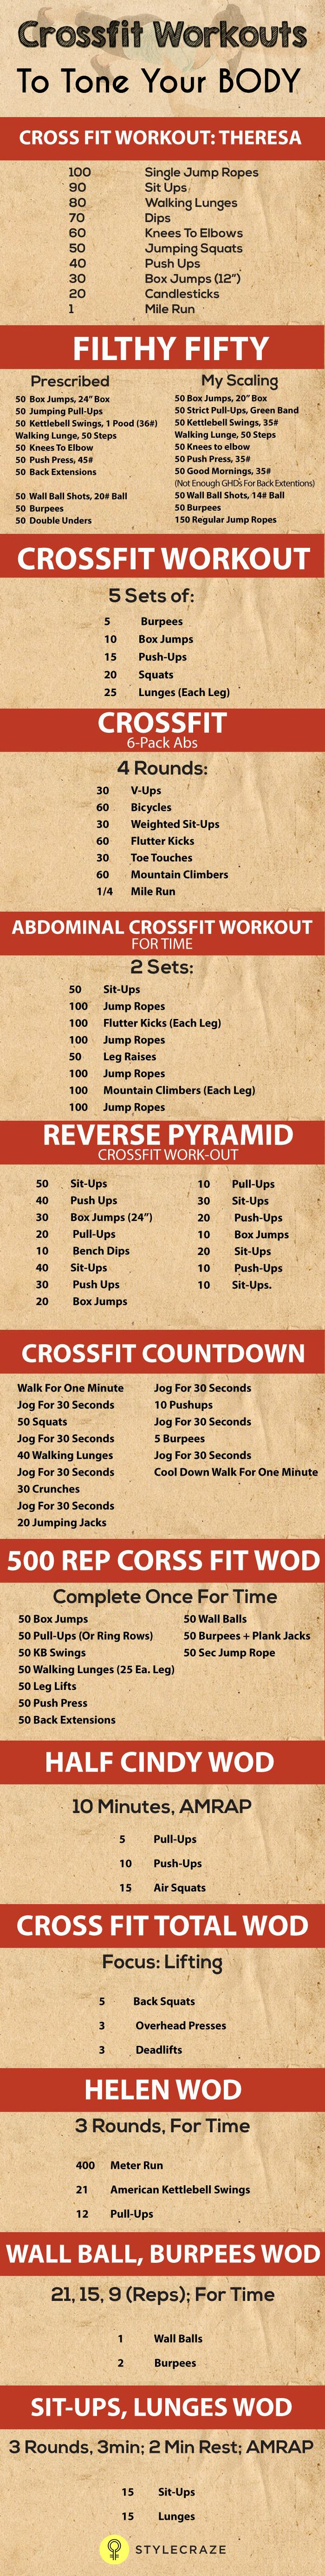 20 Effective Crossfit Workouts To Tone Your Body. pinterest.com/SuperDFitness